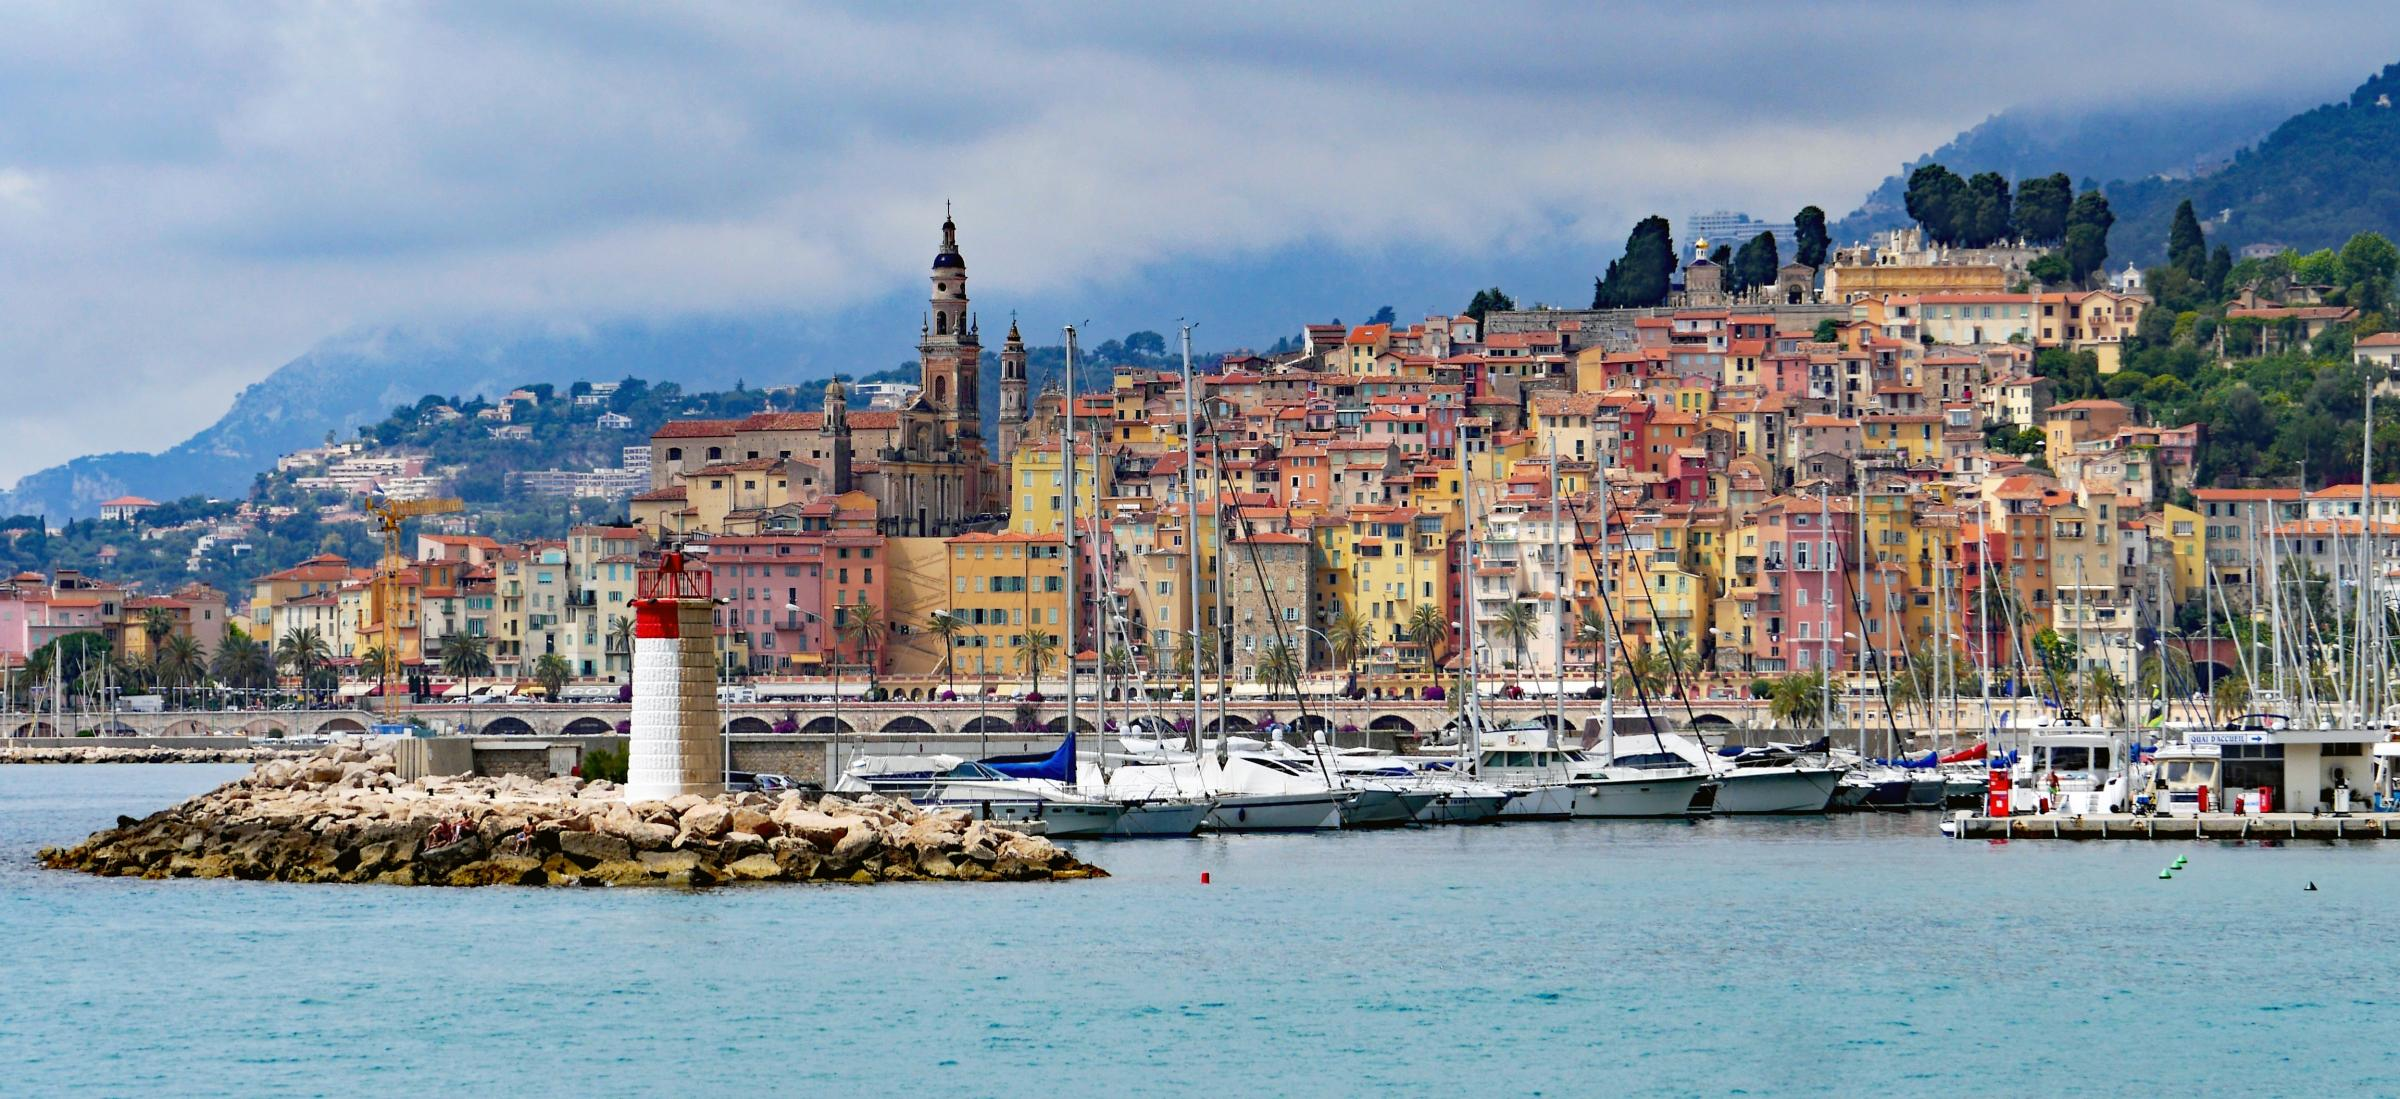 The four-day trip to the French Riviera is being paid for by a partnership between developers and Kingston Council.